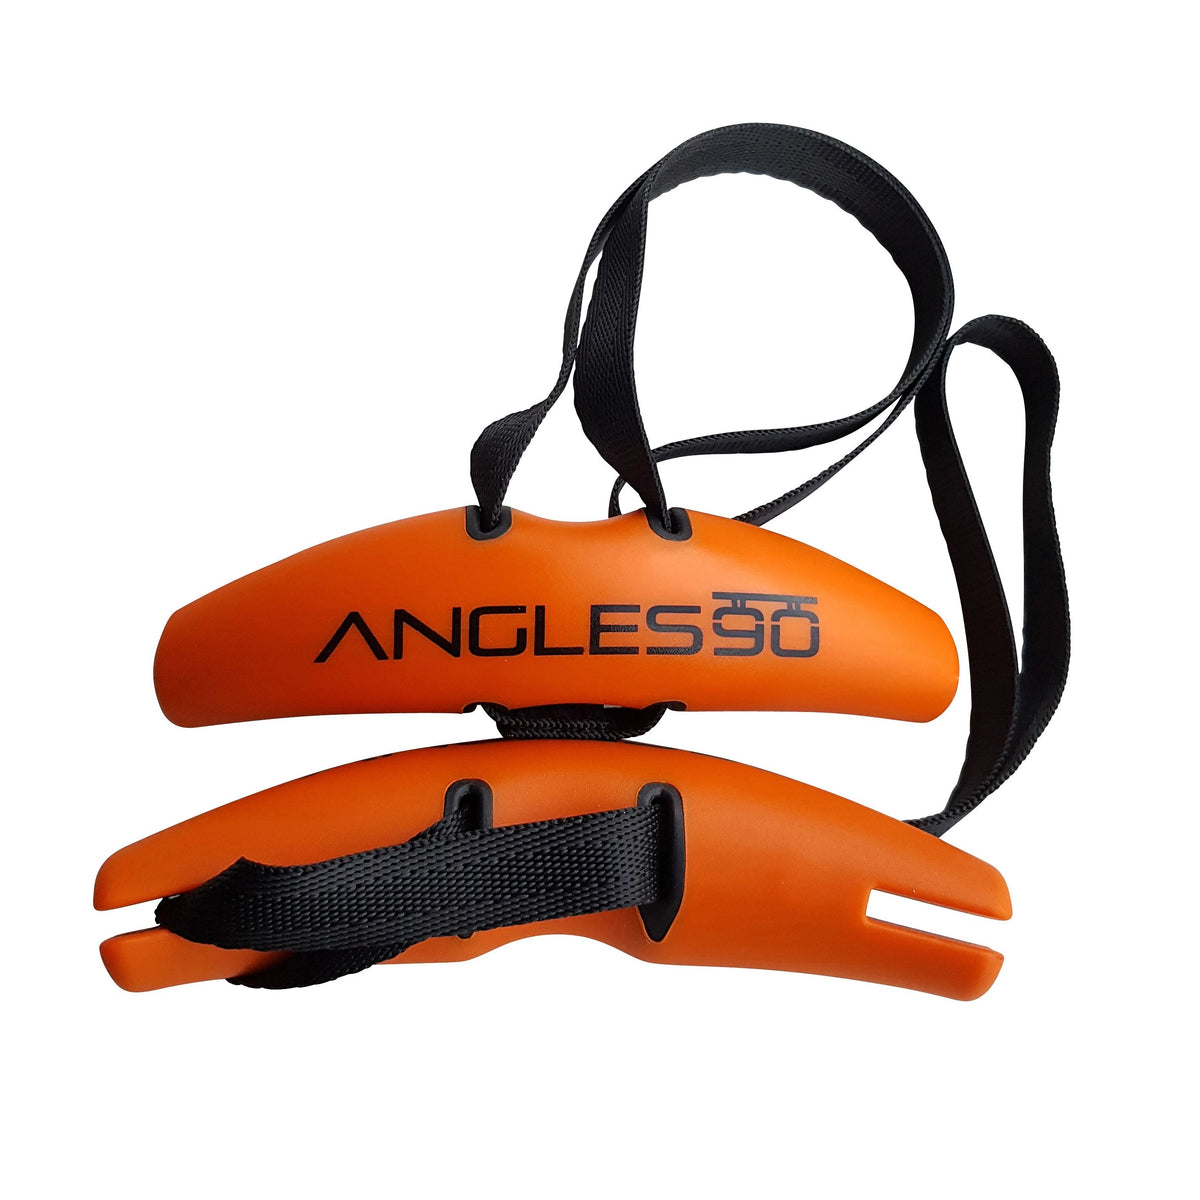 Angles90 (2 grips & 2 straps) – Angles90® - Official Online Shop